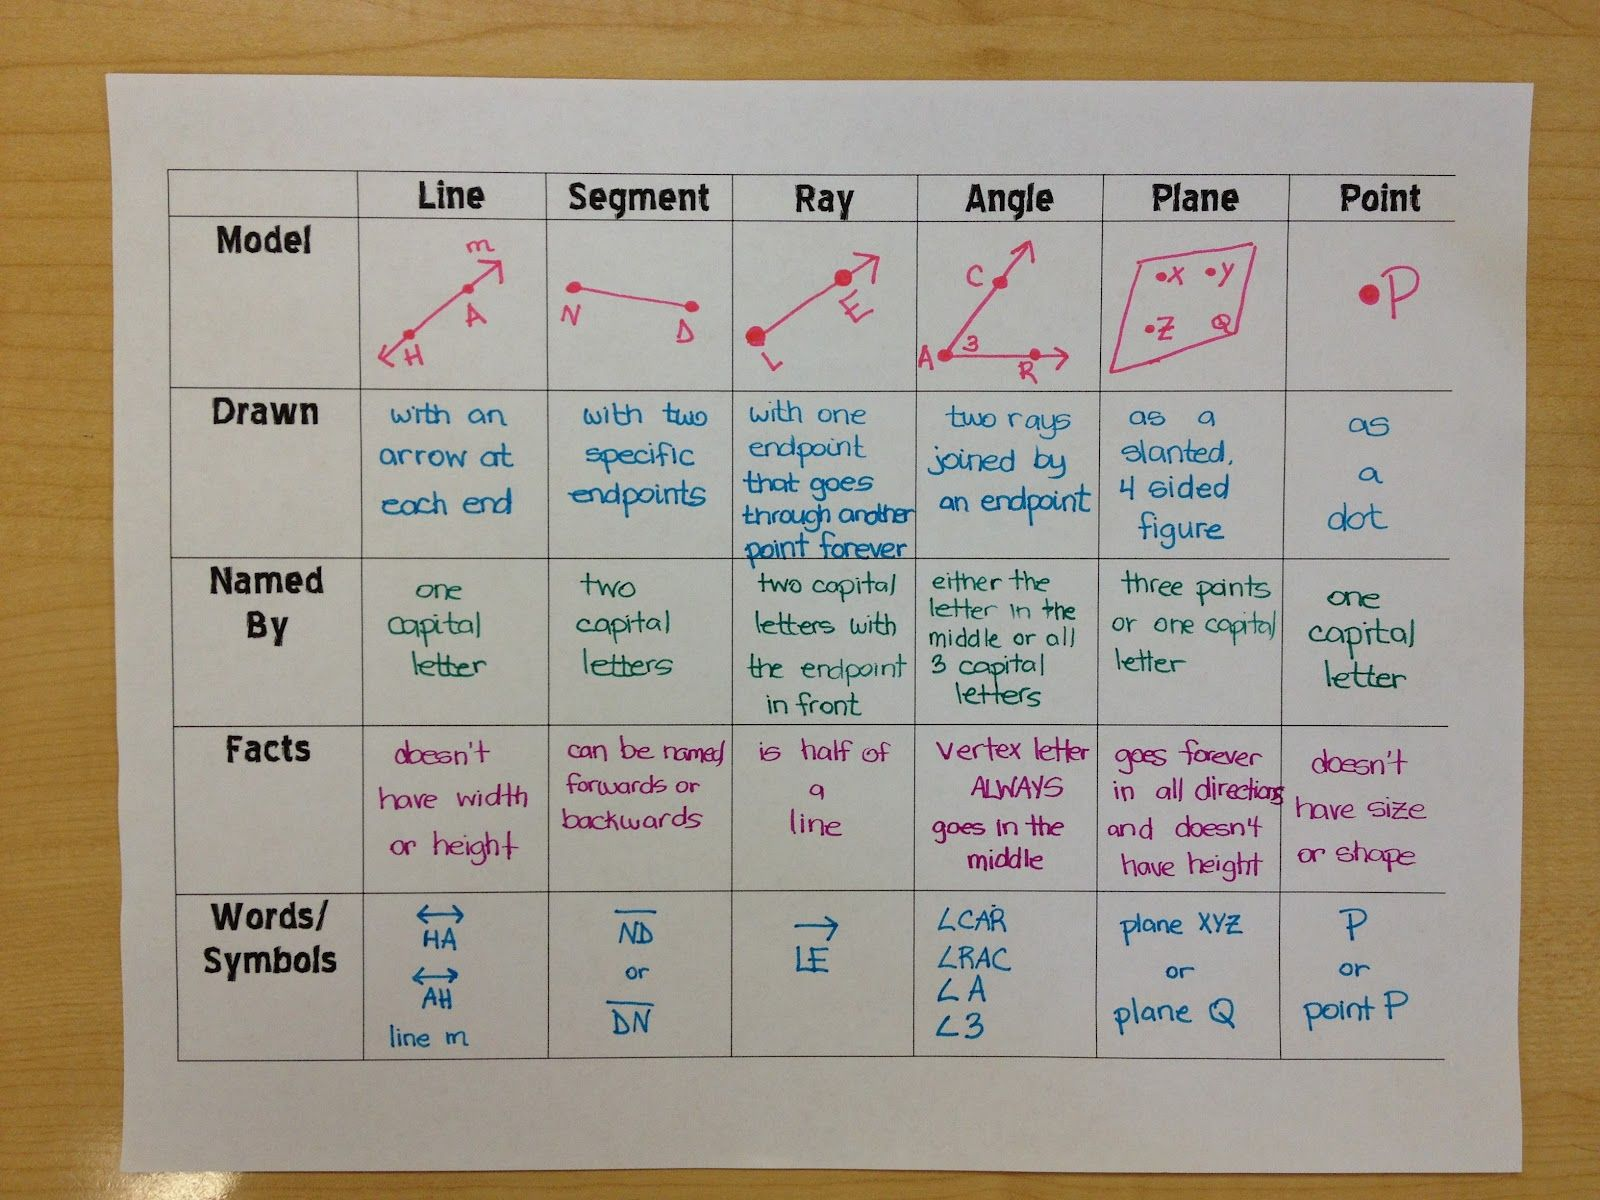 Points Lines And Plane Graphic Organizer